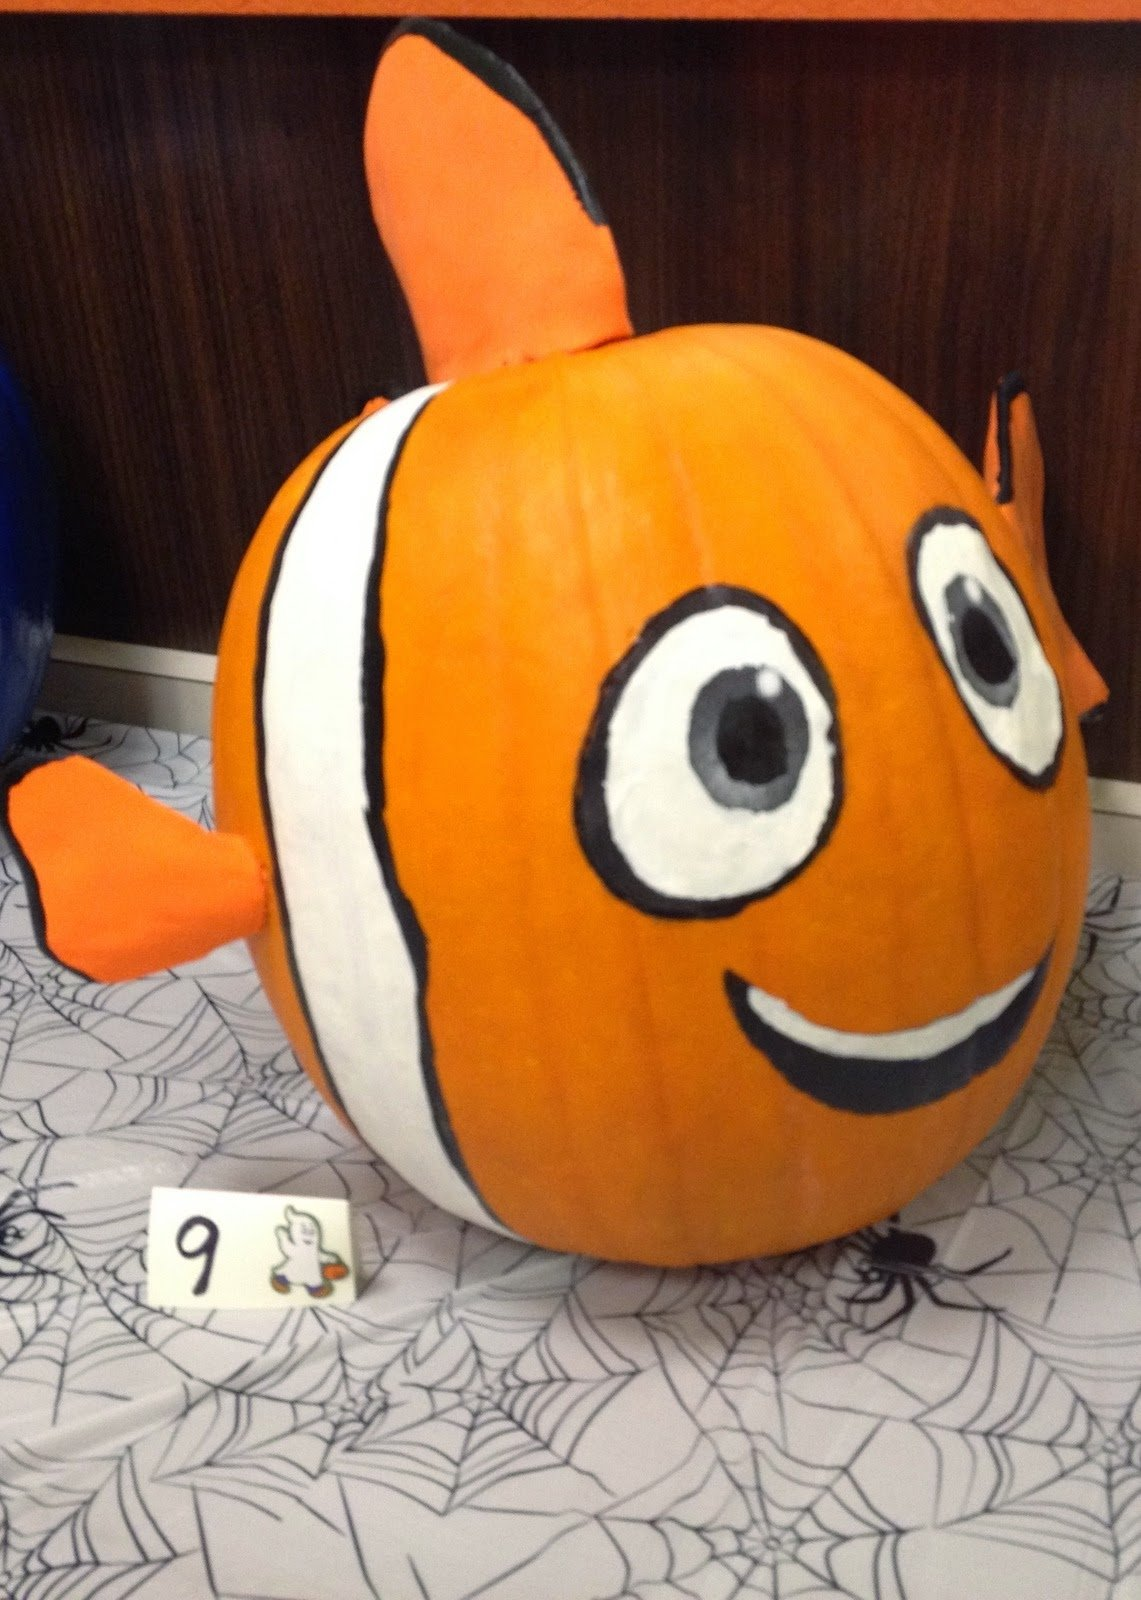 10 Stunning No Carve Pumpkin Decorating Ideas For Kids 10 halloween no carve pumpkin ideas of favorite kids characters 4 2020